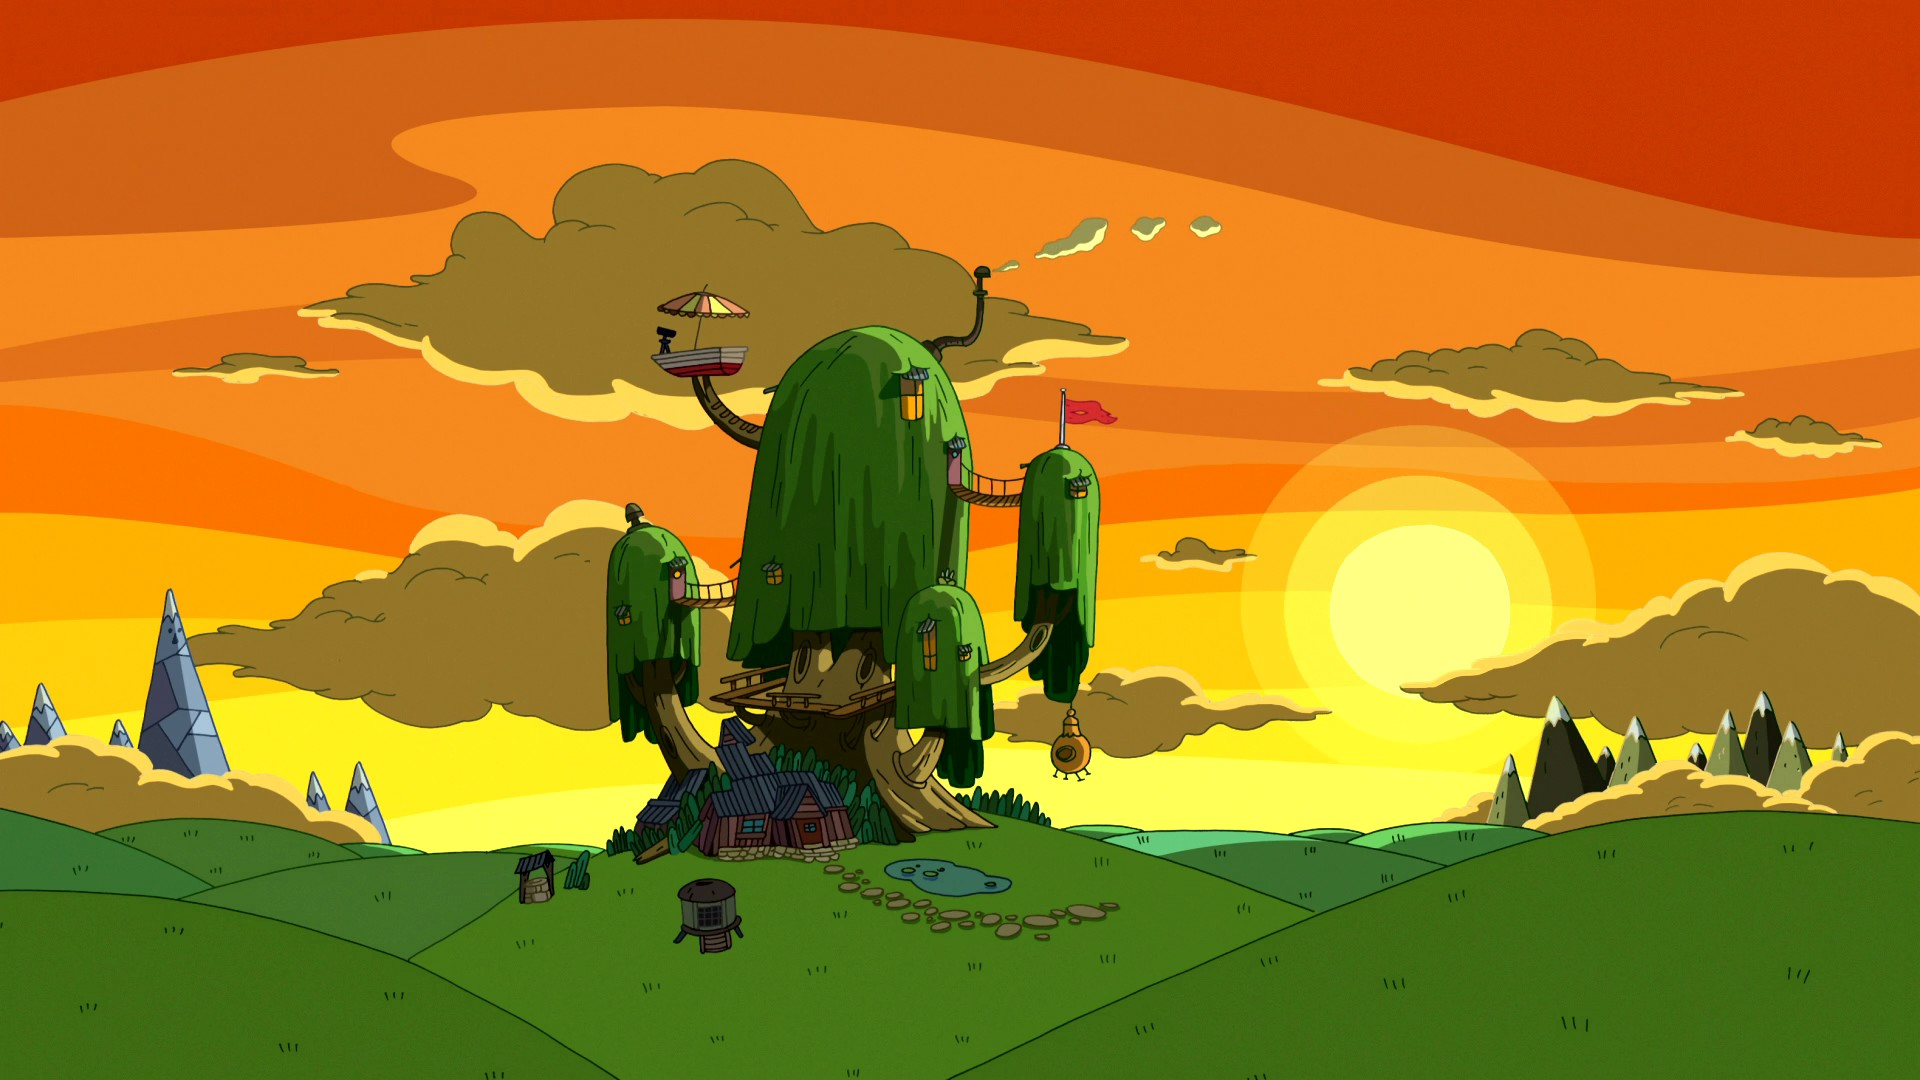 Free Download Cartoon Network Sunset Nature Houses Adventure Time